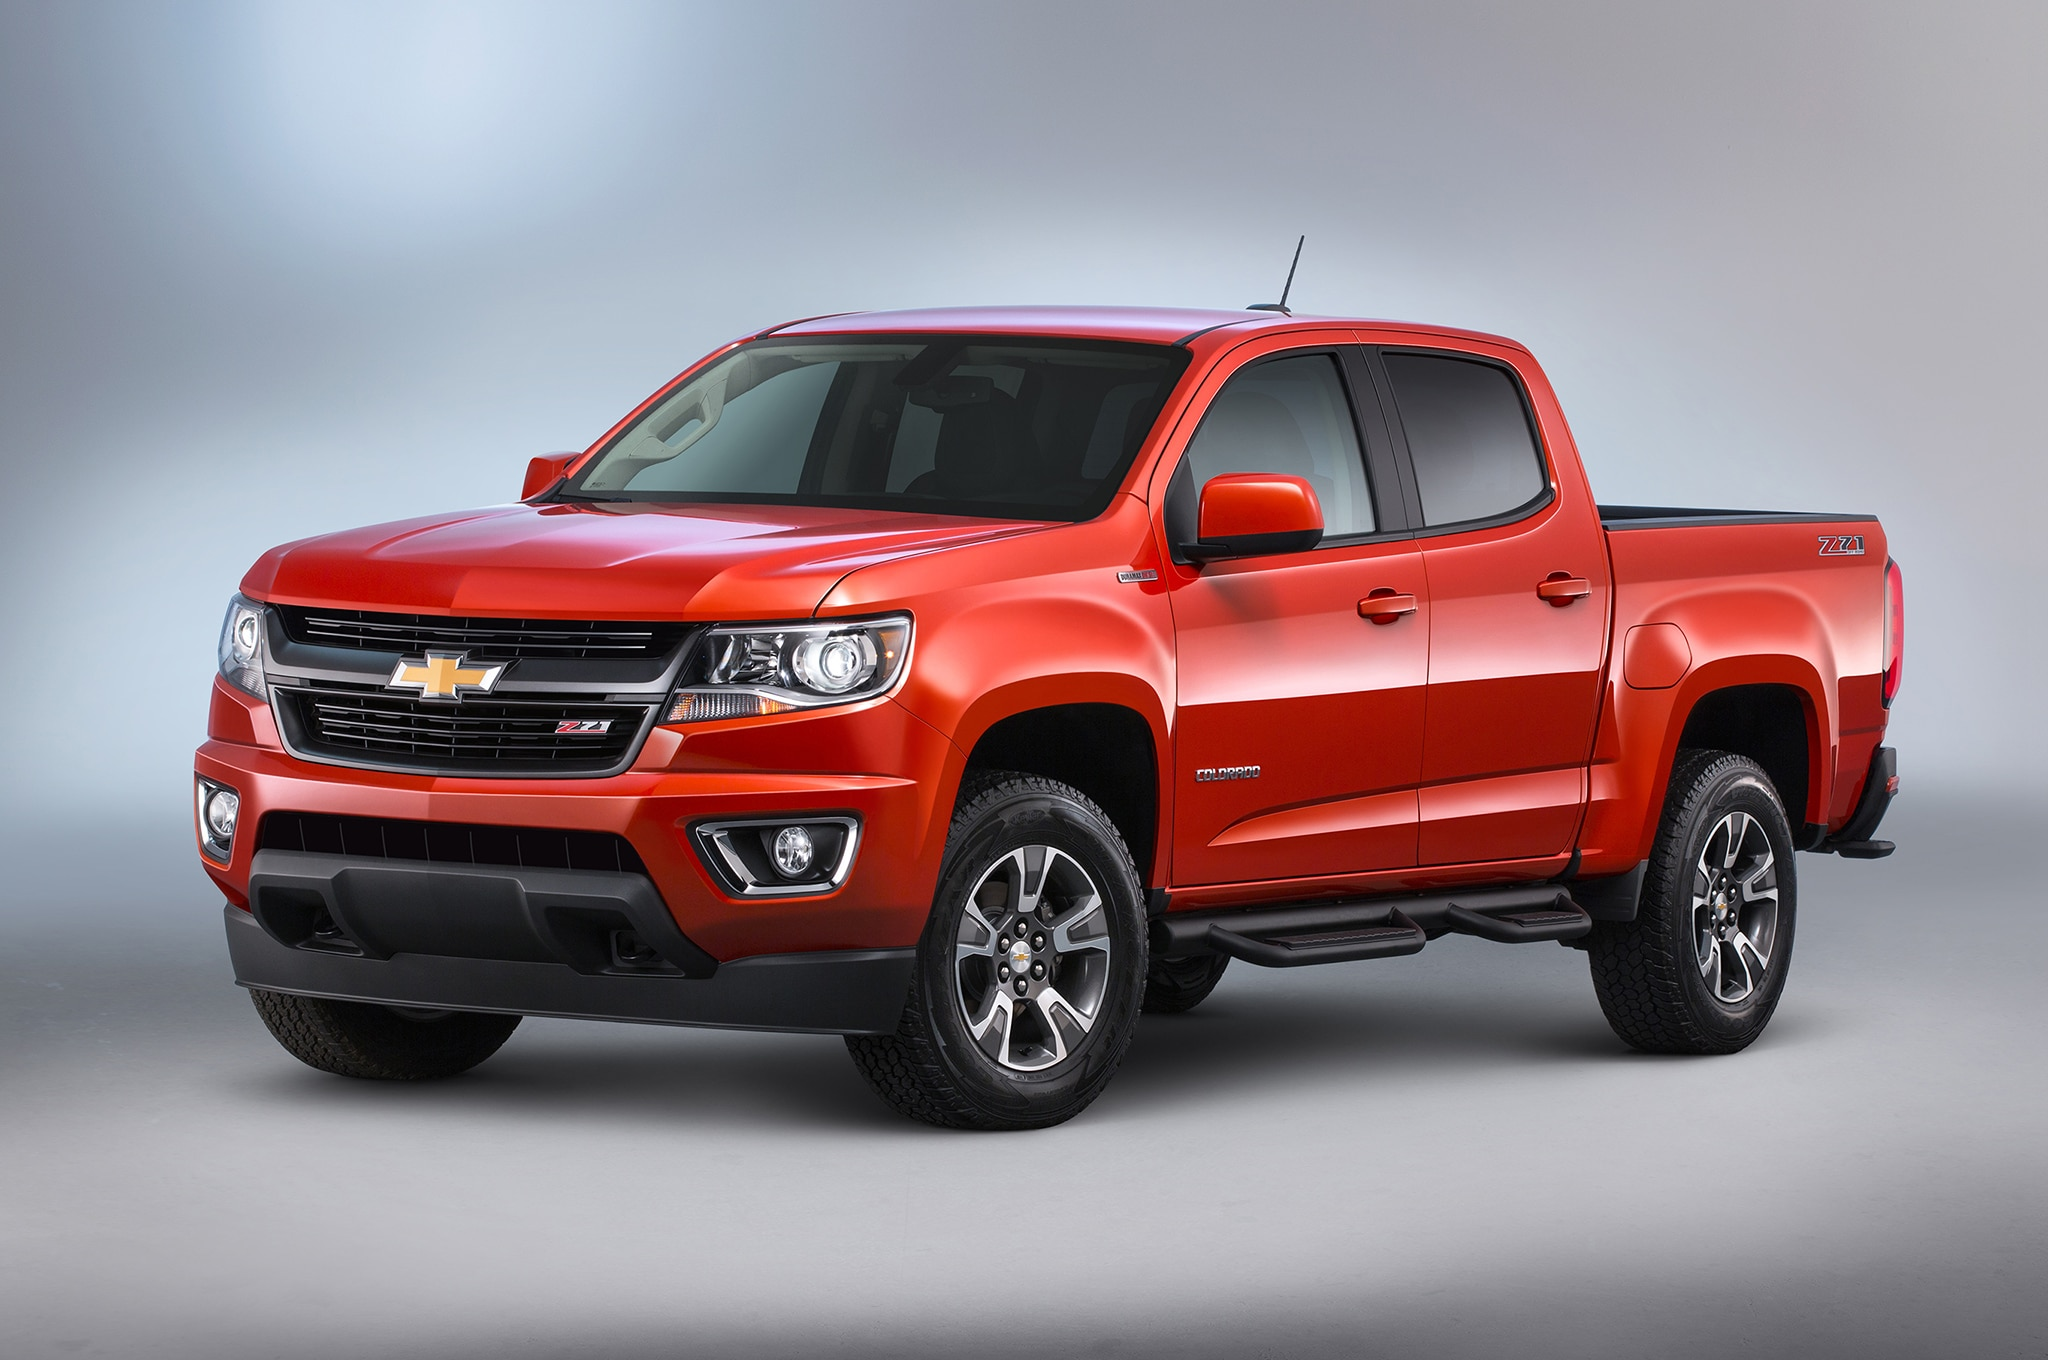 Report Diesel Chevrolet Colorado to Undergo More Emissions Tests